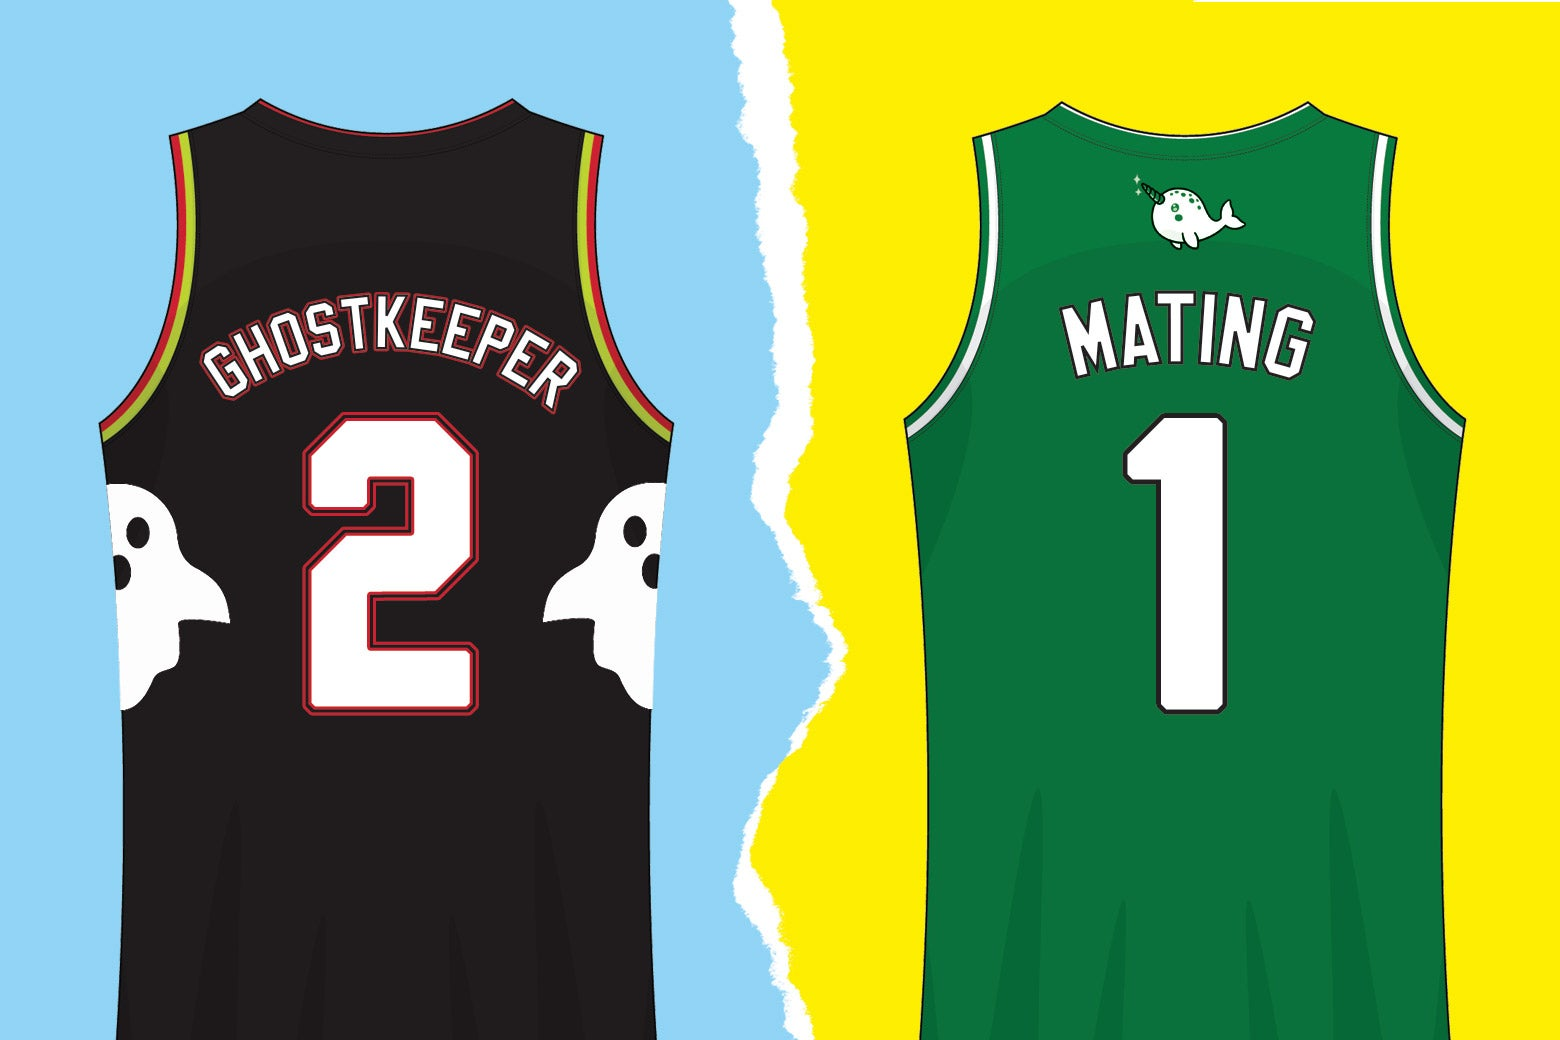 Two basketball jerseys depicting fictional players Jimbob Ghostkeeper and Dr. Narwahls Mating.